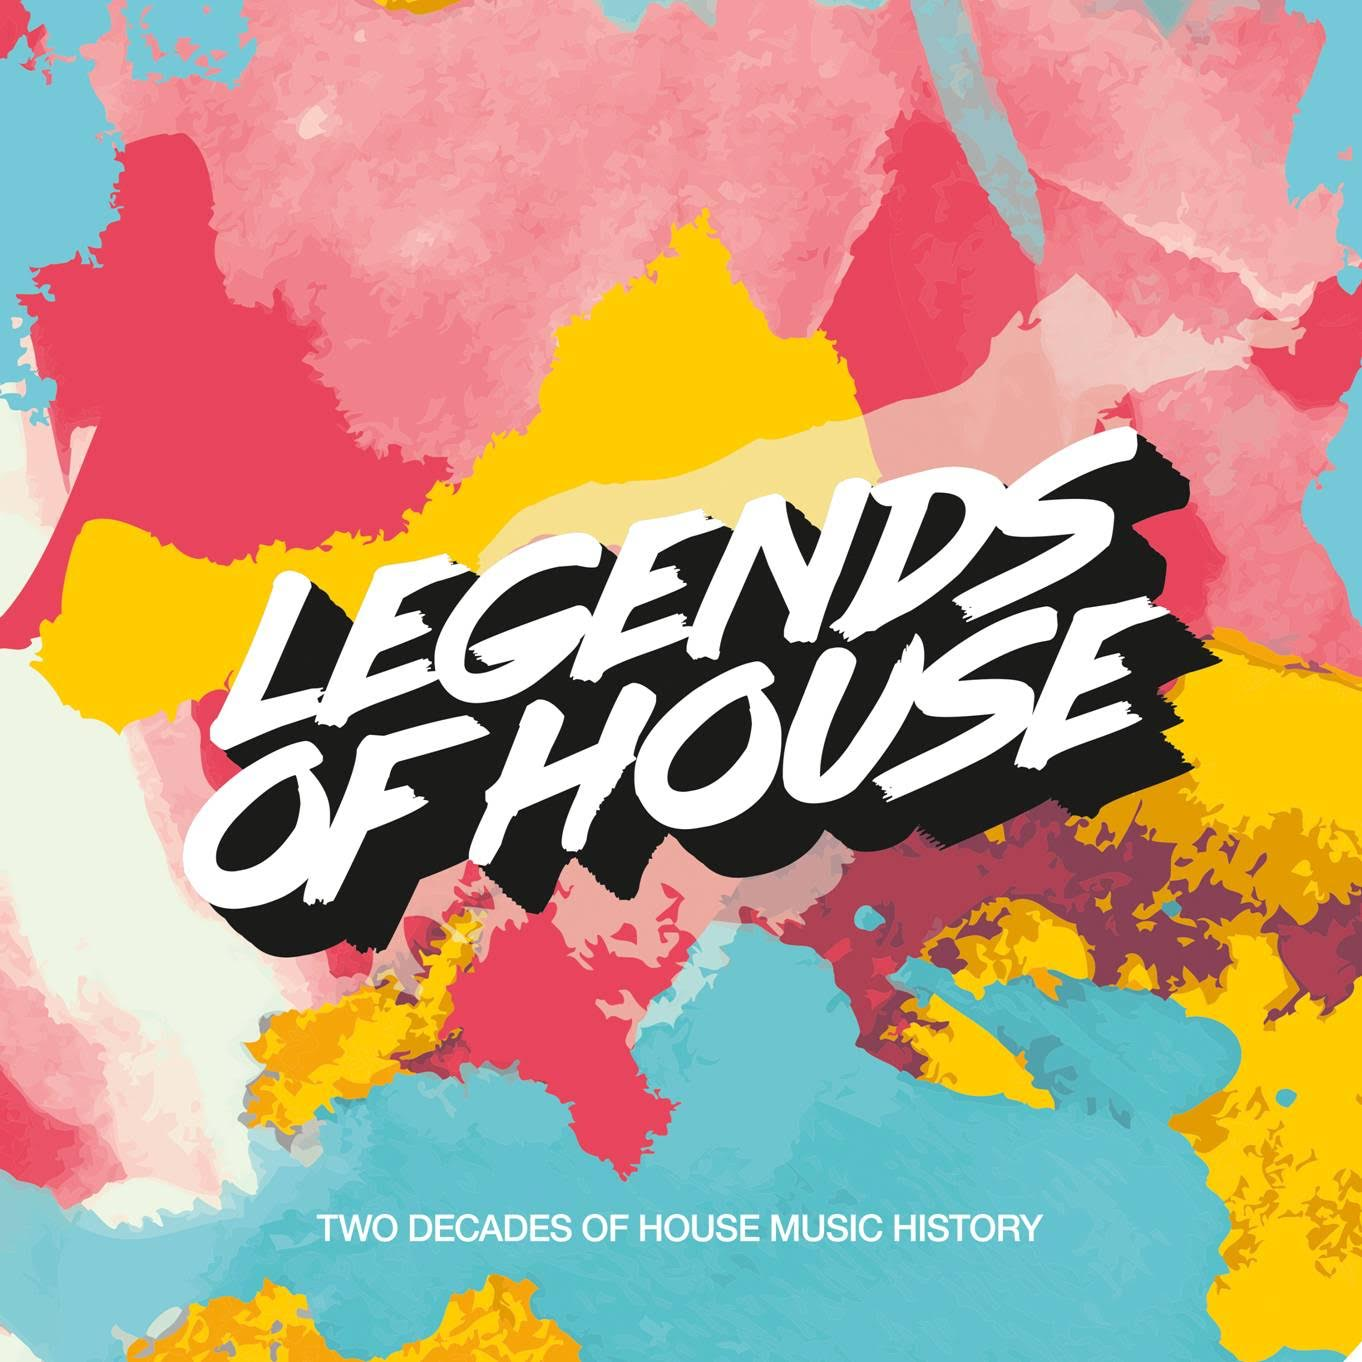 milk_sugar_-_legends_of_house_-_artwork.jpg